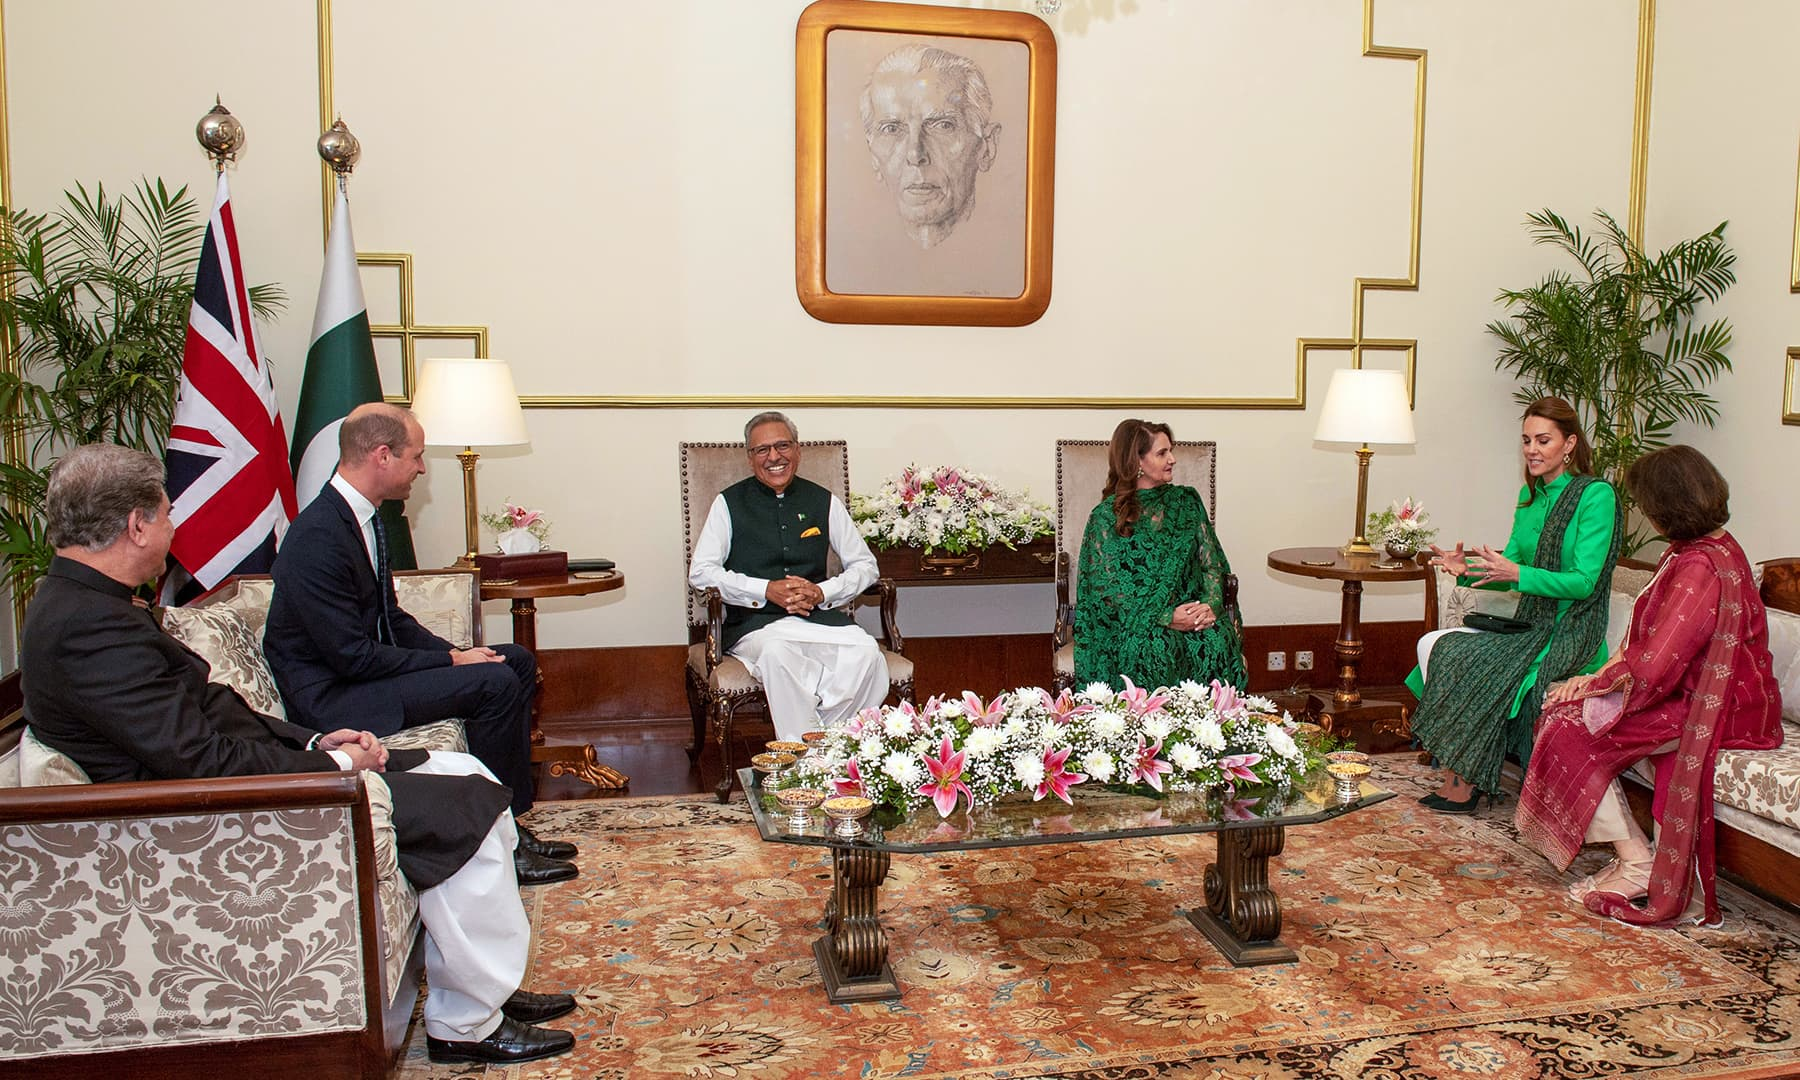 Prince William and Catherine, Duchess of Cambridge attend a meeting with President Arif Alvi at the Presidential Palace in Islamabad, October 15. — Reuters